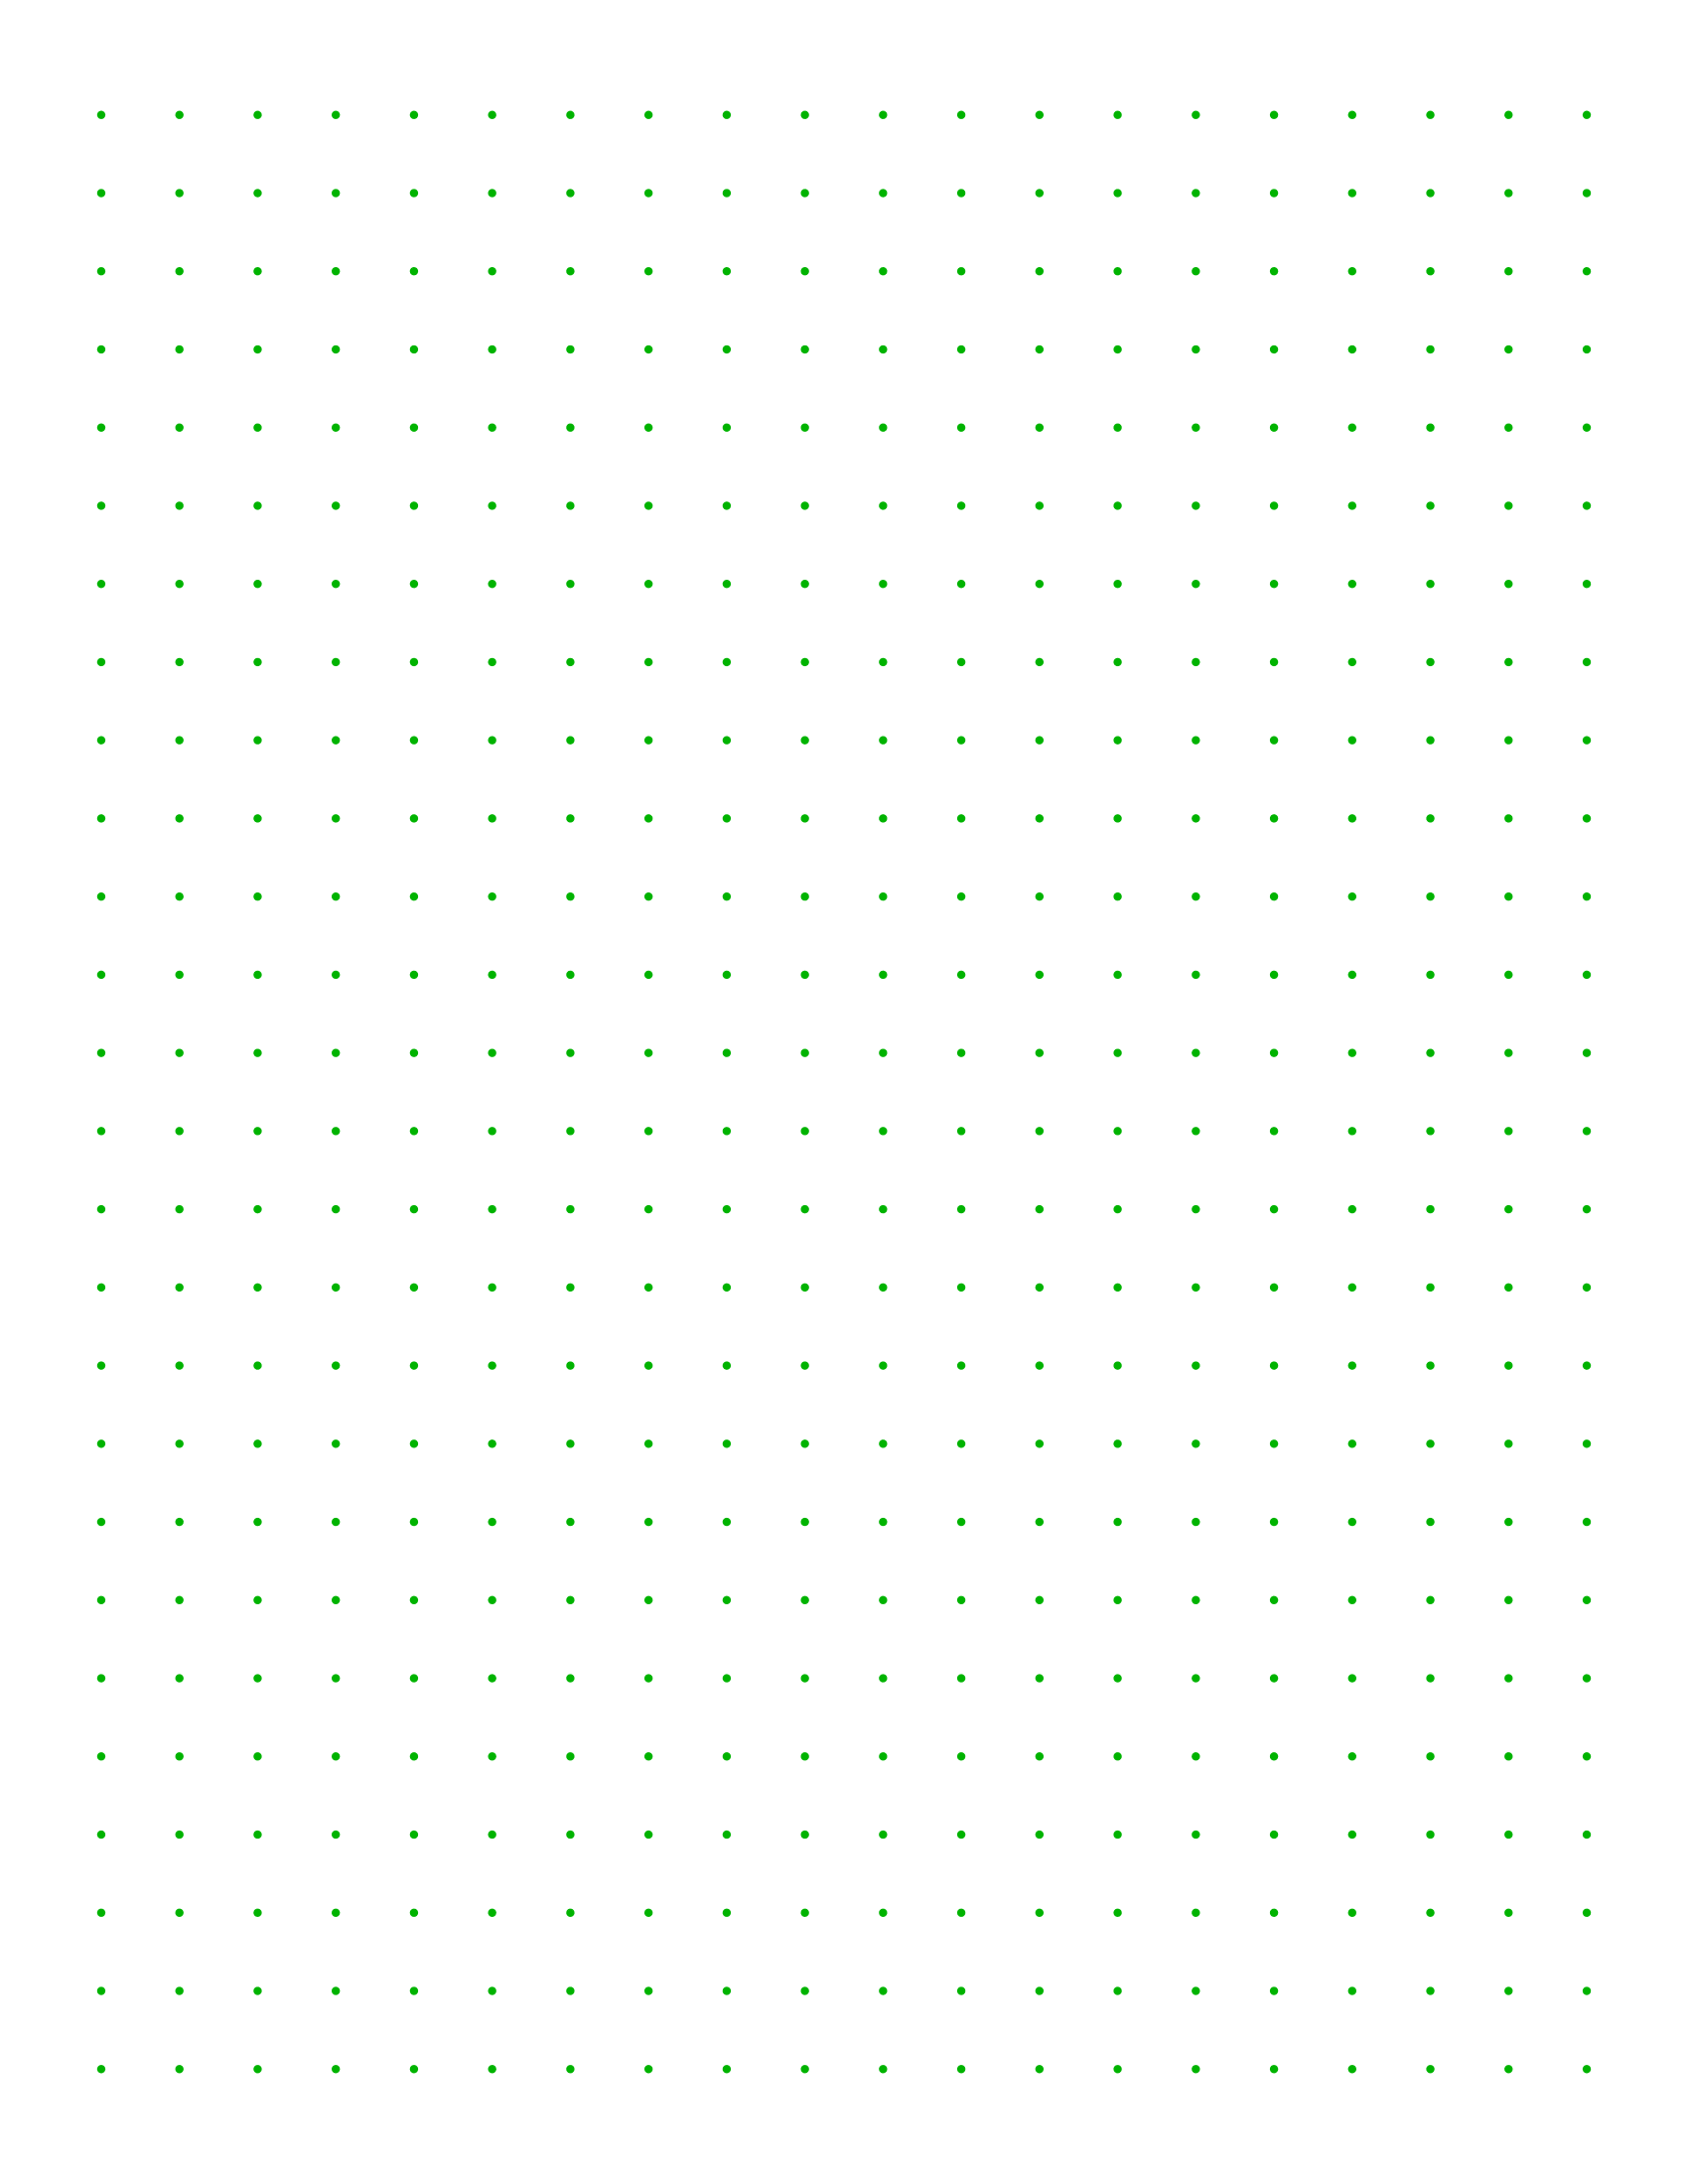 photograph about Free Printable Dot Grid Paper called Absolutely free On line Graph Paper / Sq. Dots